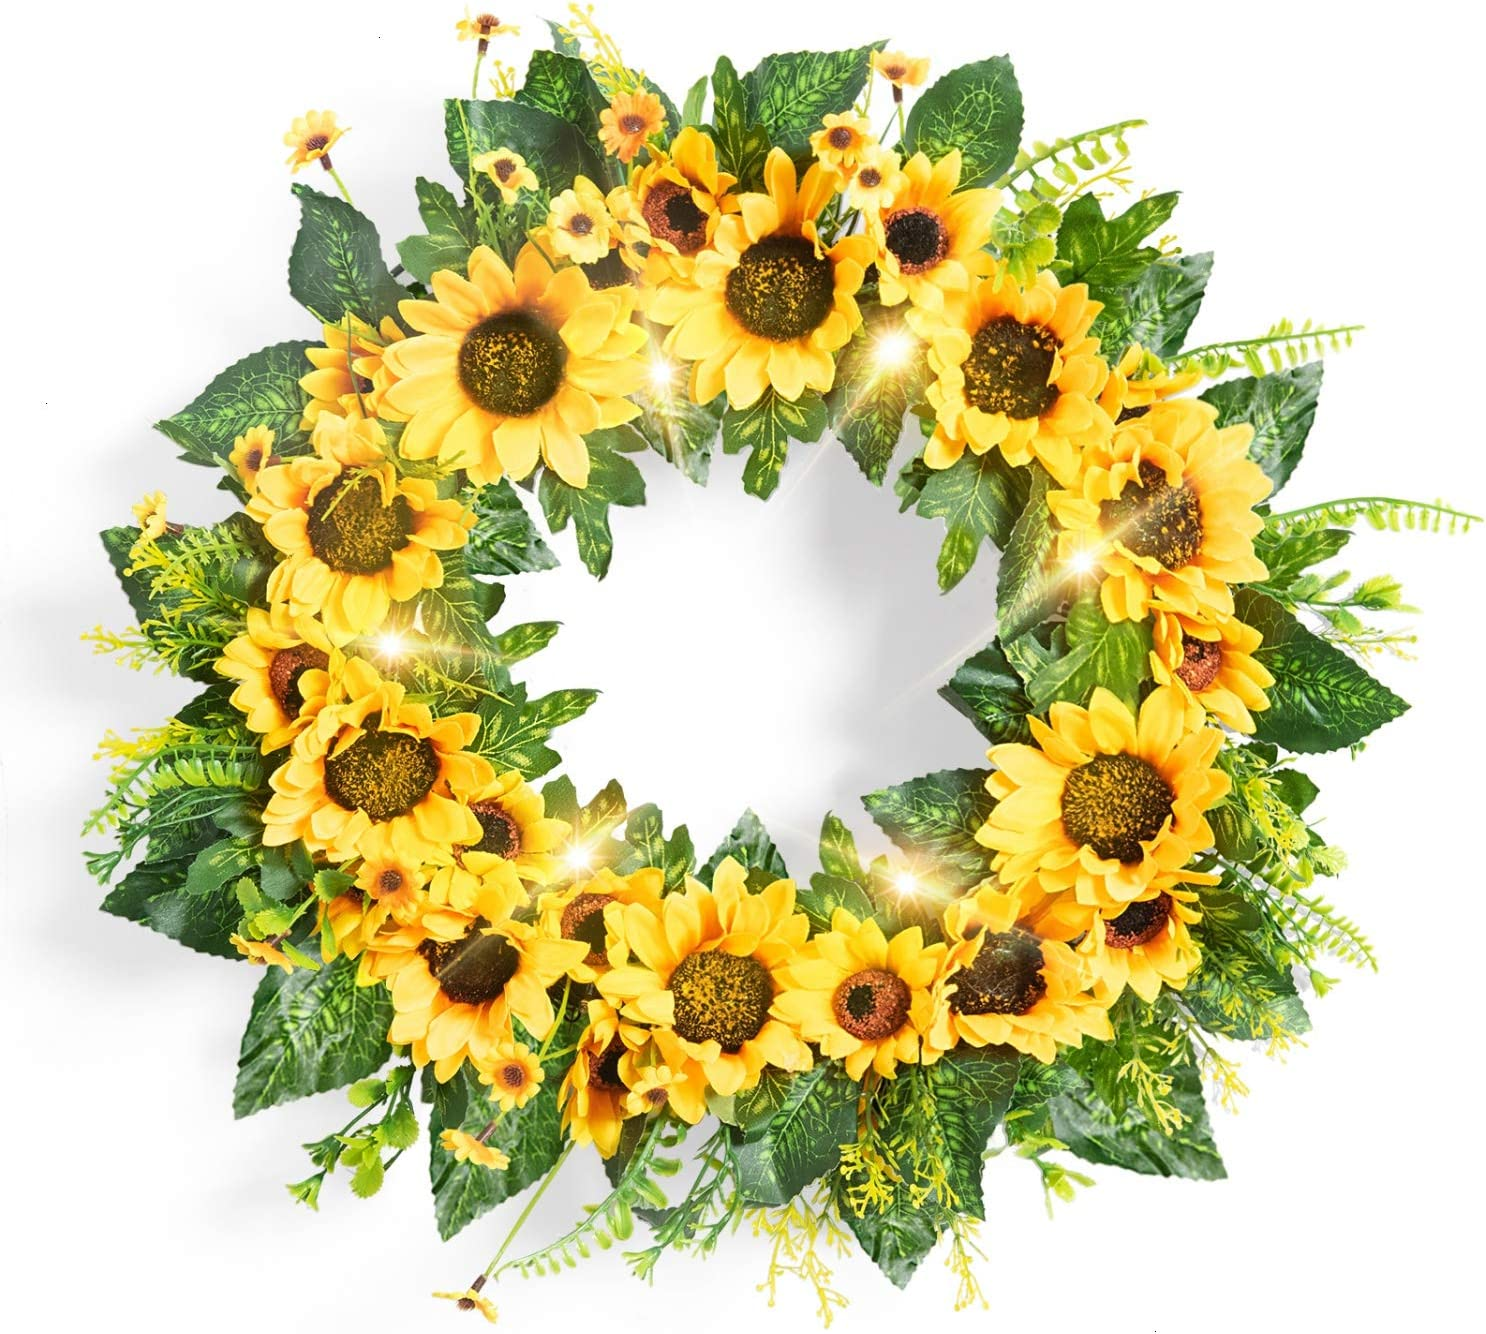 Rocinha Sunflower Wreaths for Front Door Decor 18'' Artificial Summer Floral Wreath with Green Leaf, Large Lighted Spring Wreath for Door, Window, Outdoor, Farmhouse Home Decor